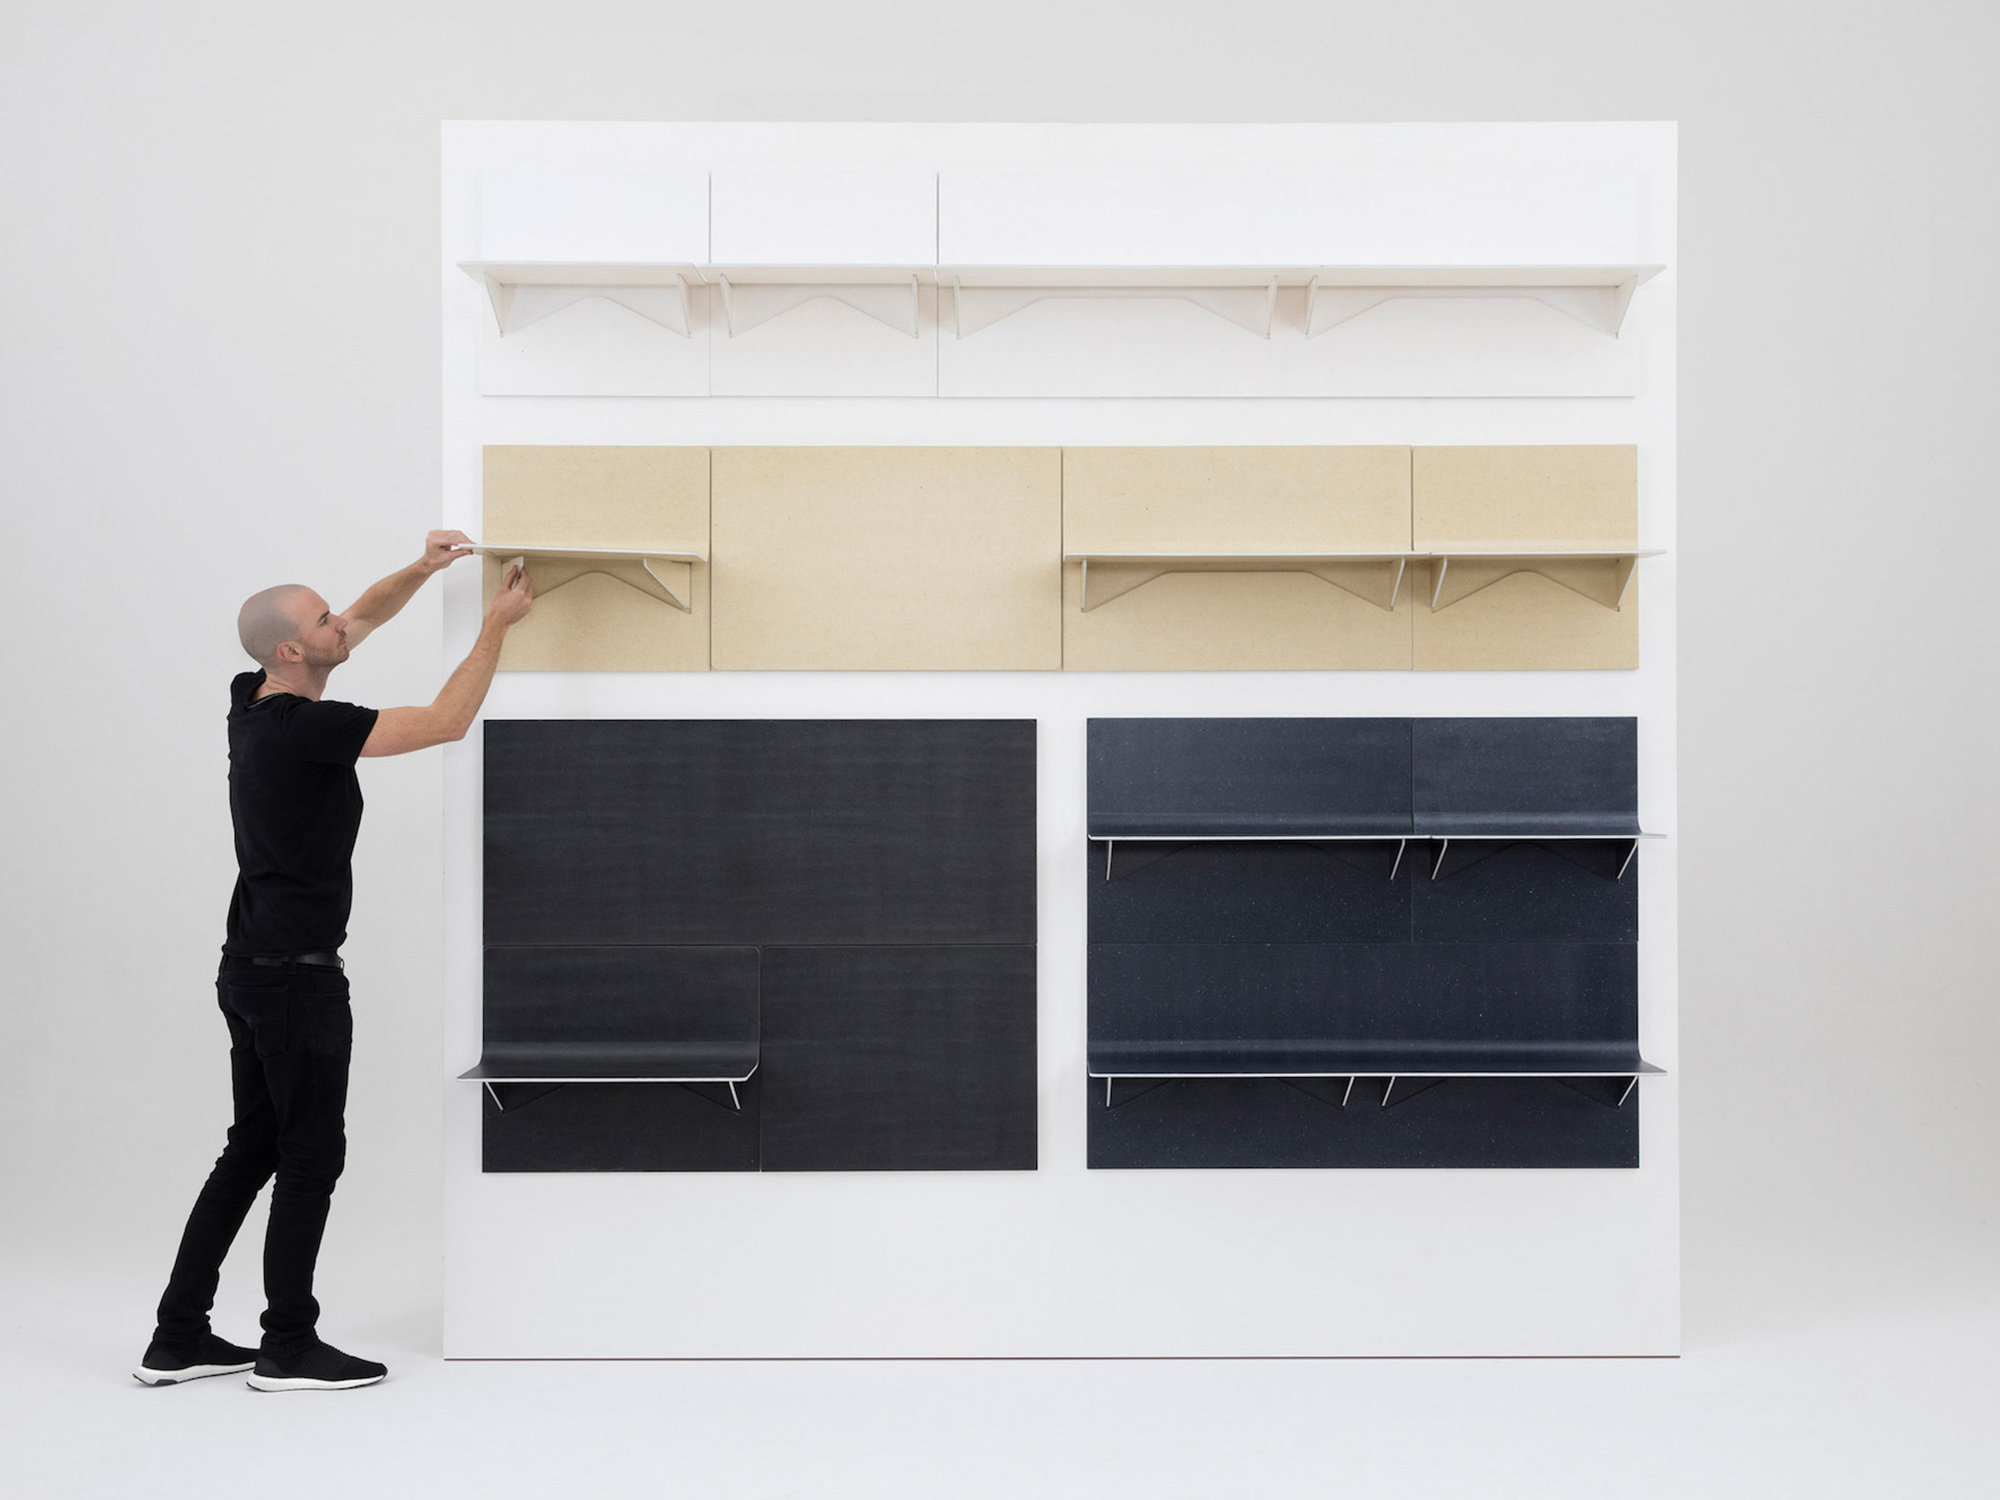 iGNANT-Design-Roundup-Space-Saving-Solutions-73 copy